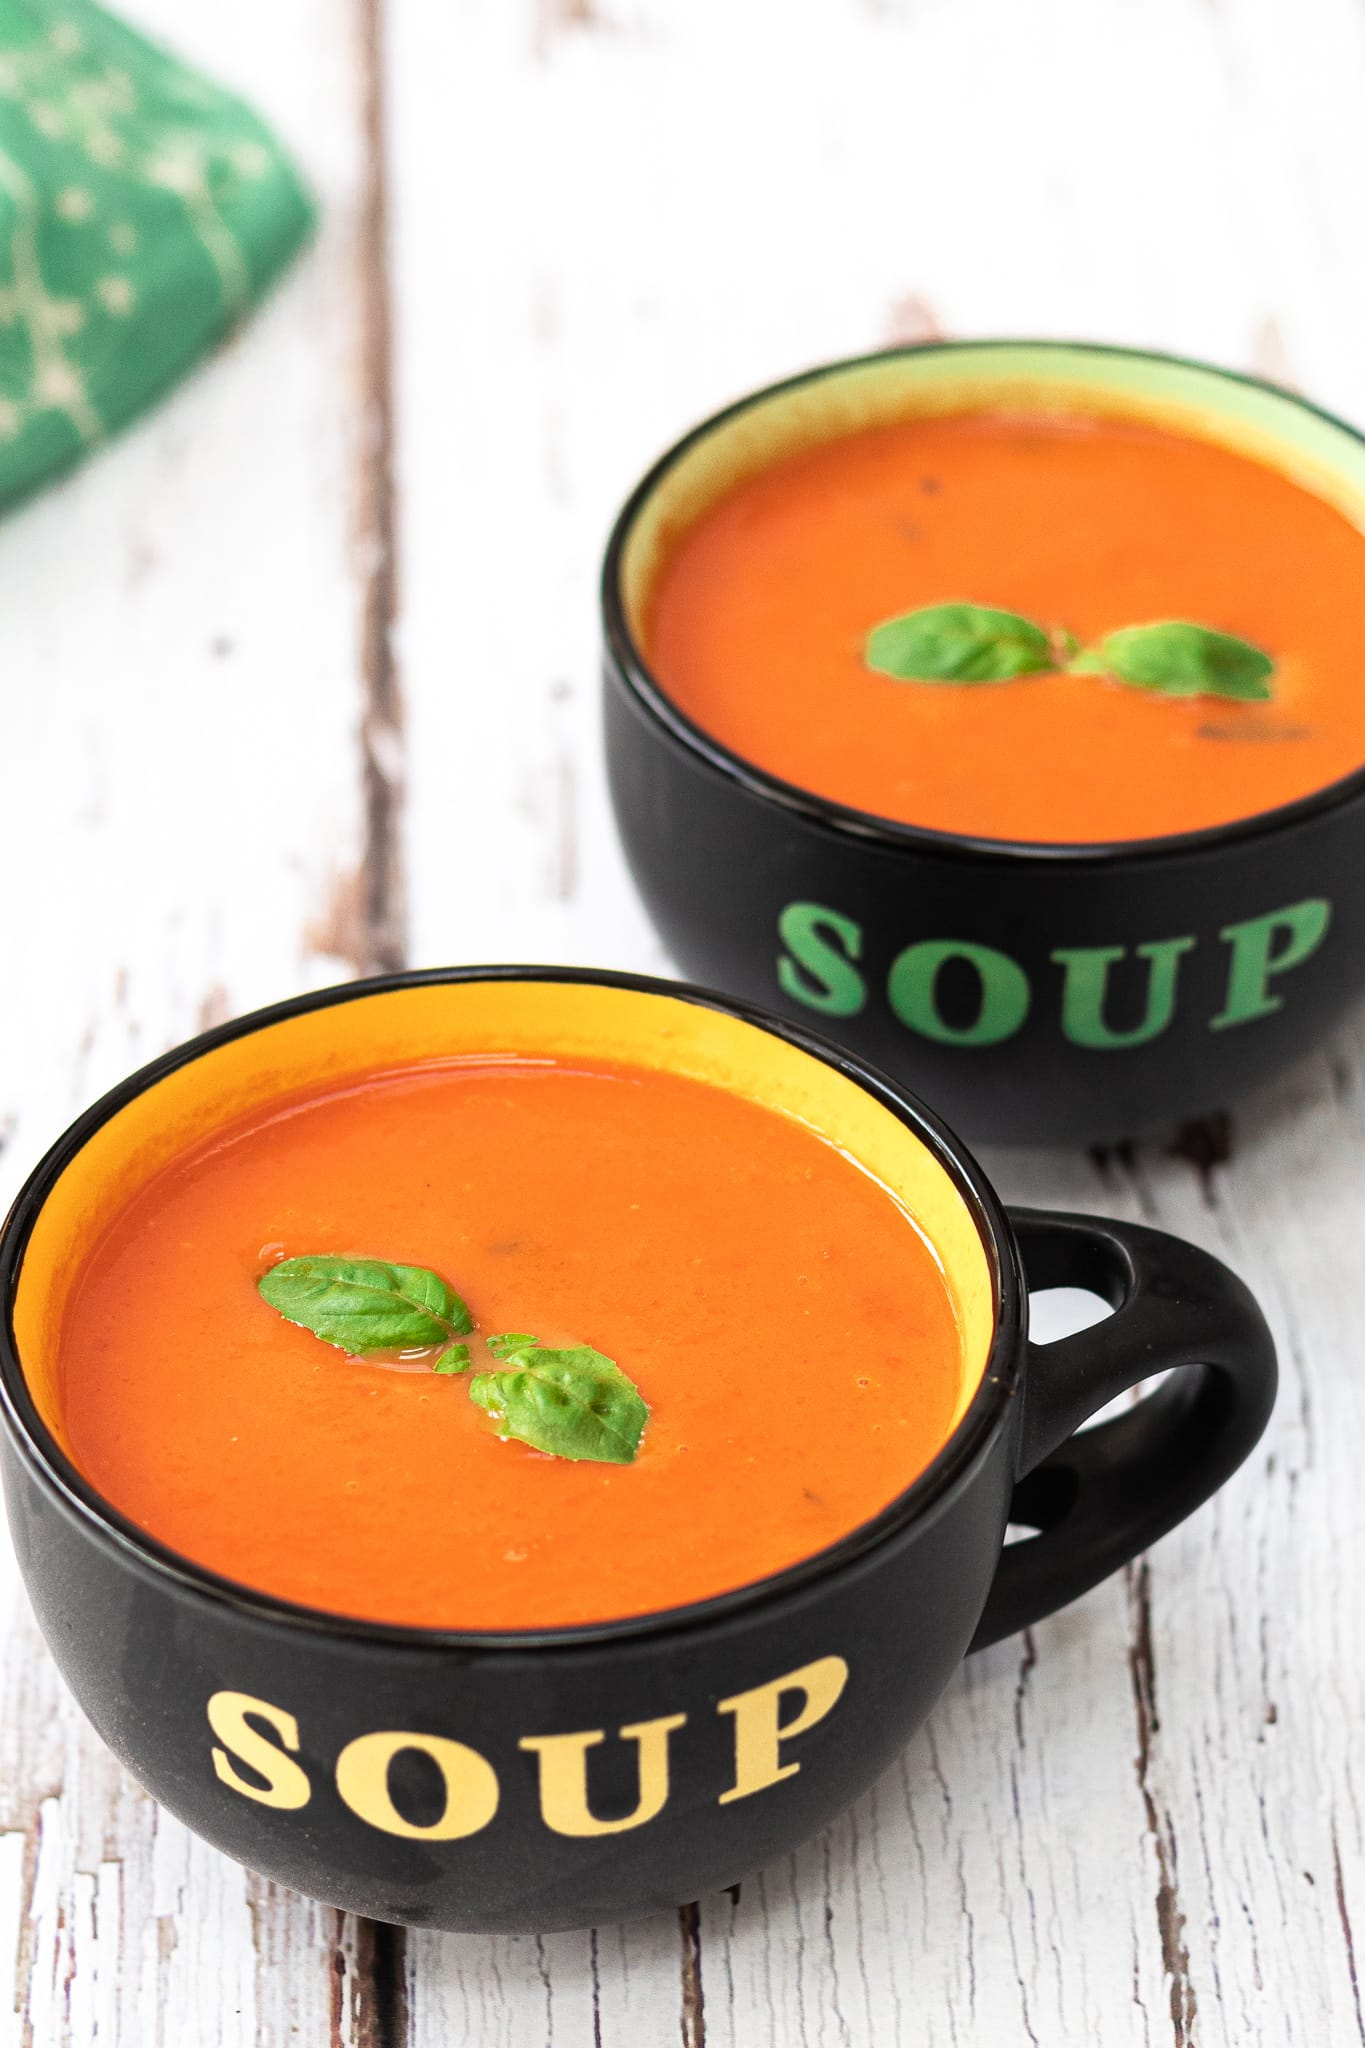 two bowls of tomato soup with basil on top